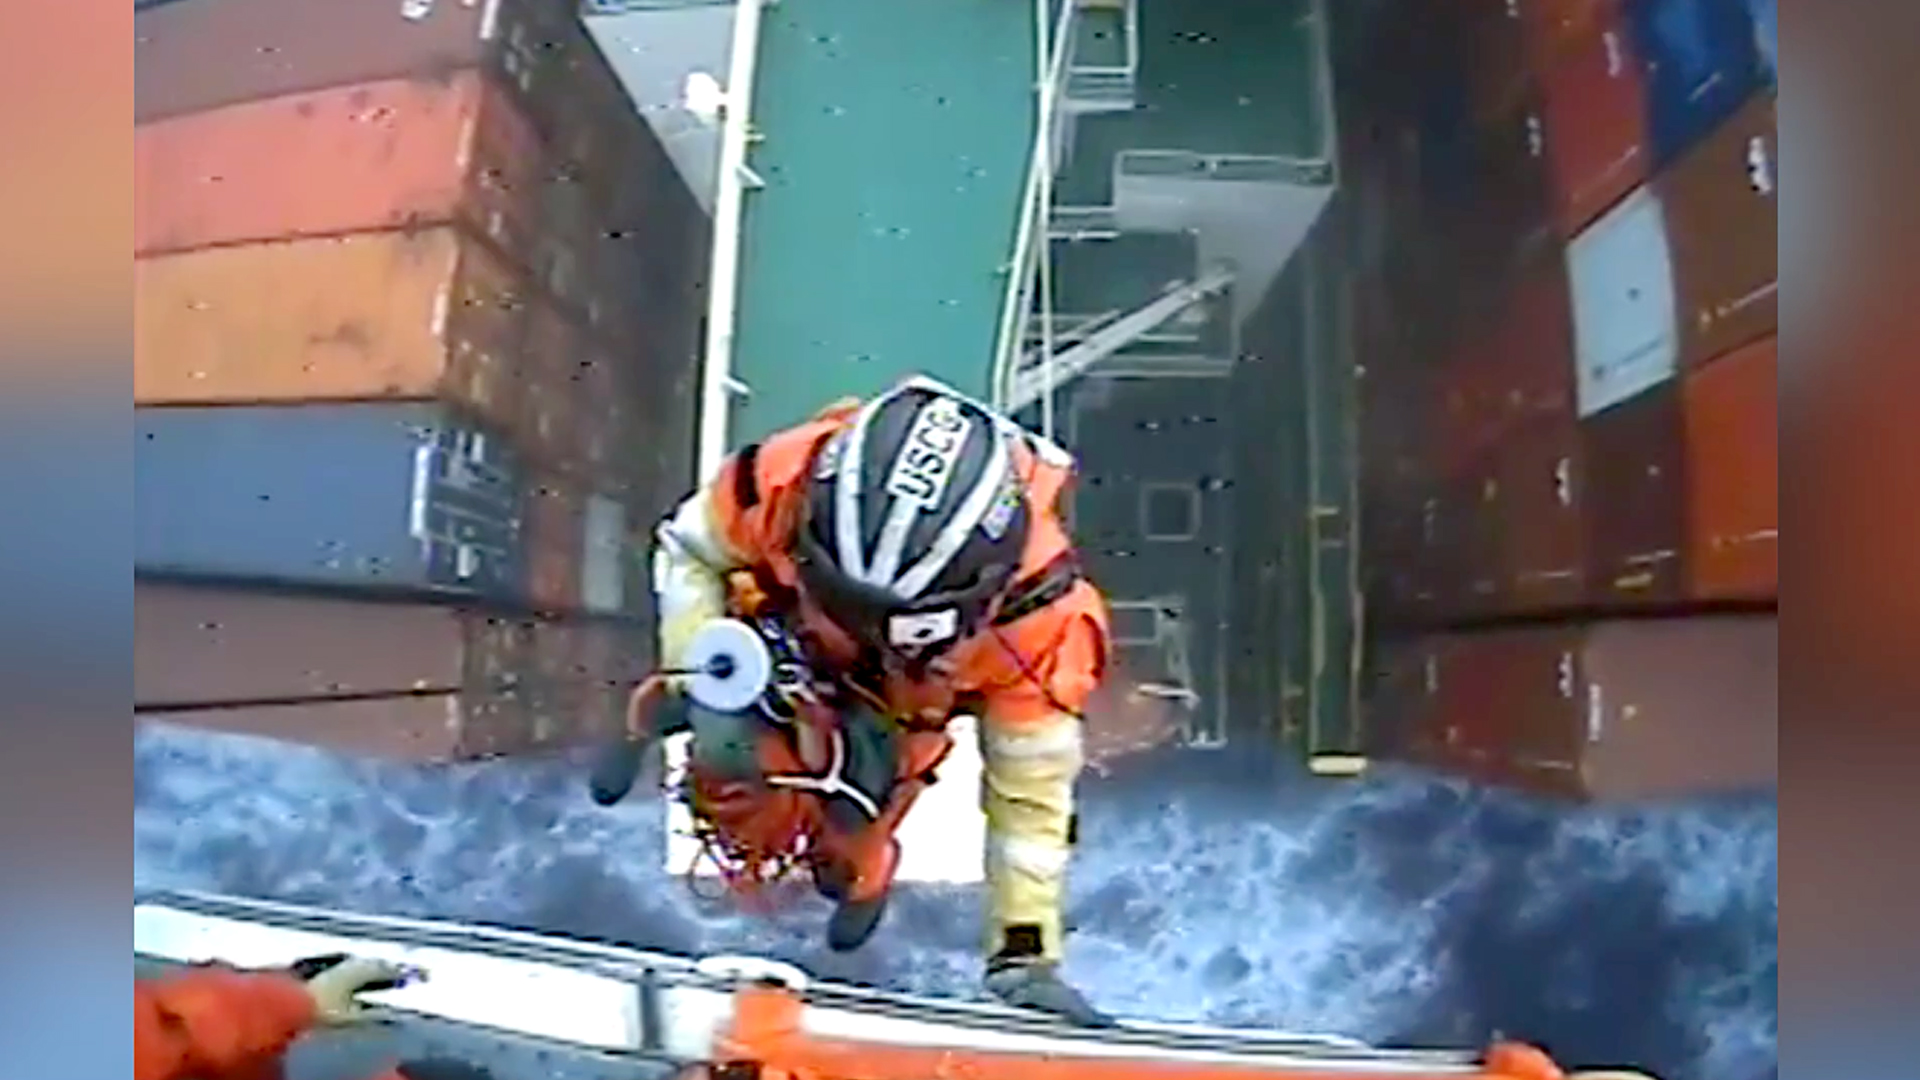 VIDEO: Tanks Guys: Coast Guard Copter Winches Injured Crewman From Container Tanker